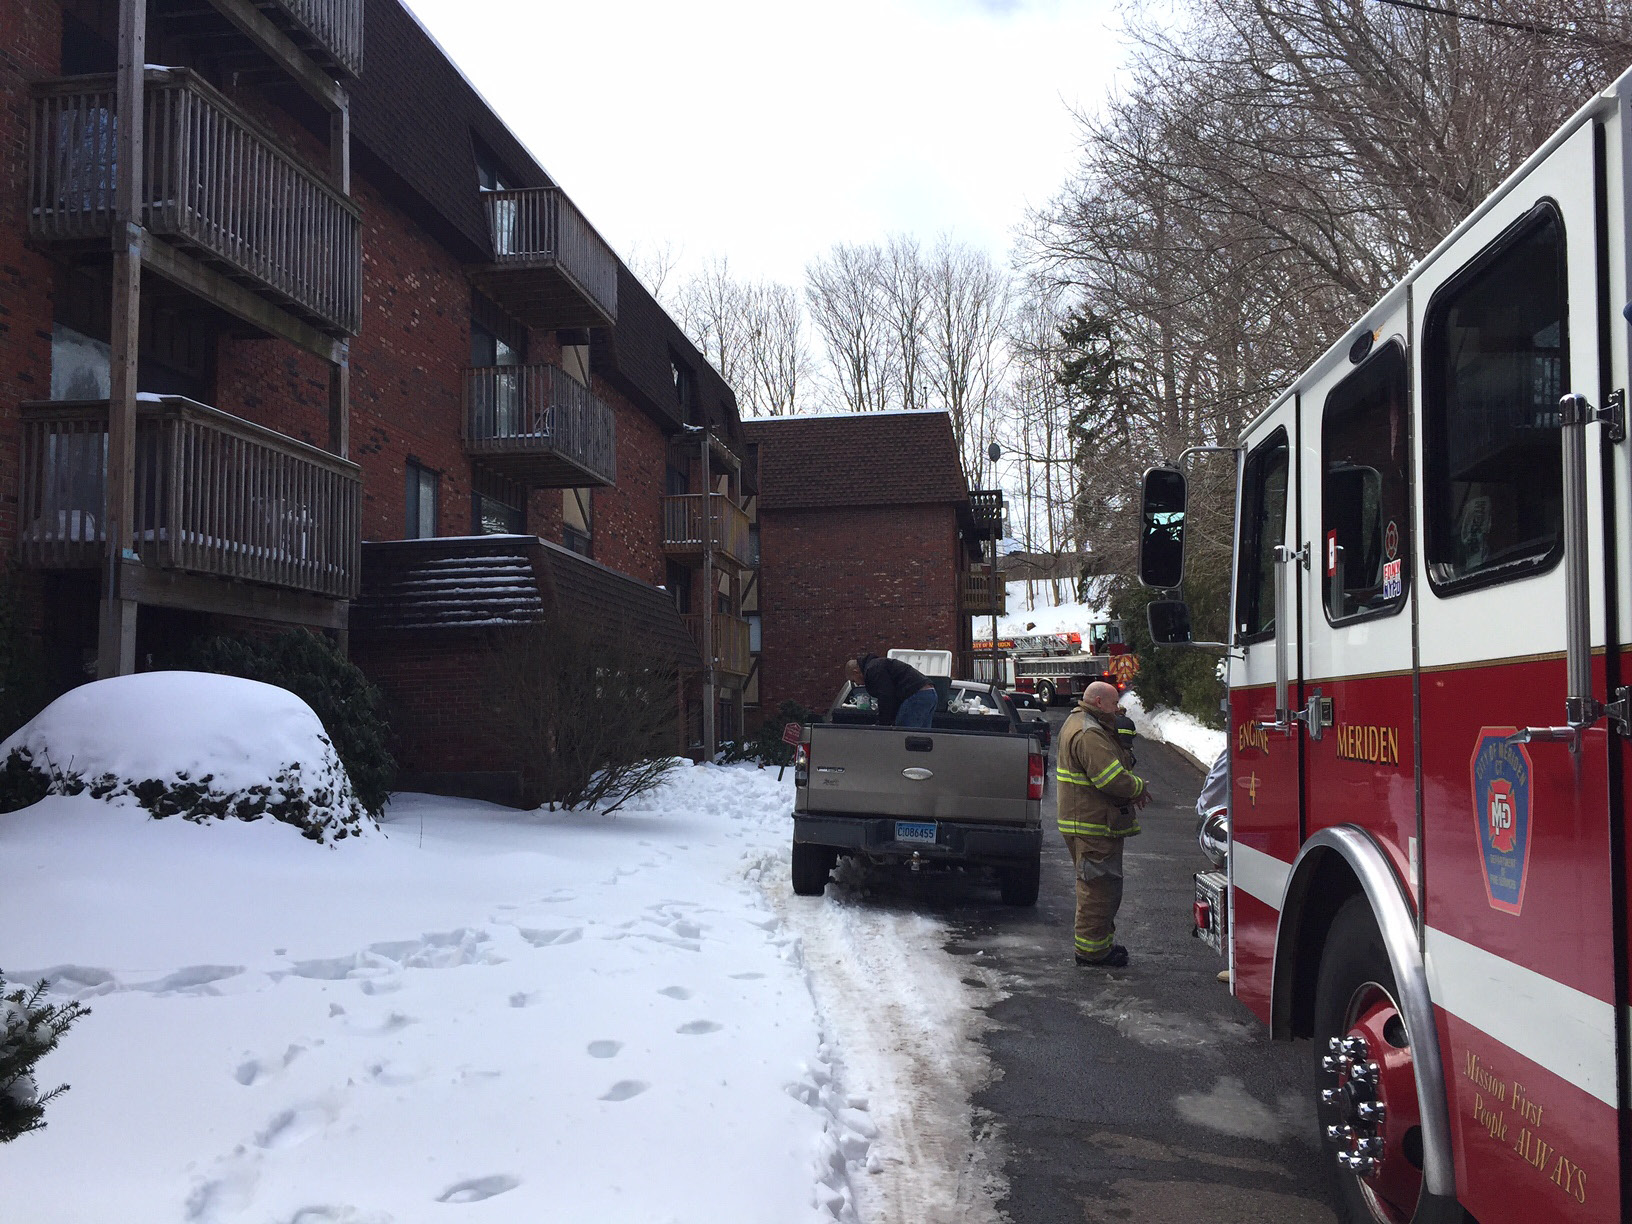 Fire at Atrium apartments on East Main Street, Saturday, March 18. |Ashley Kus, The Record-Journal